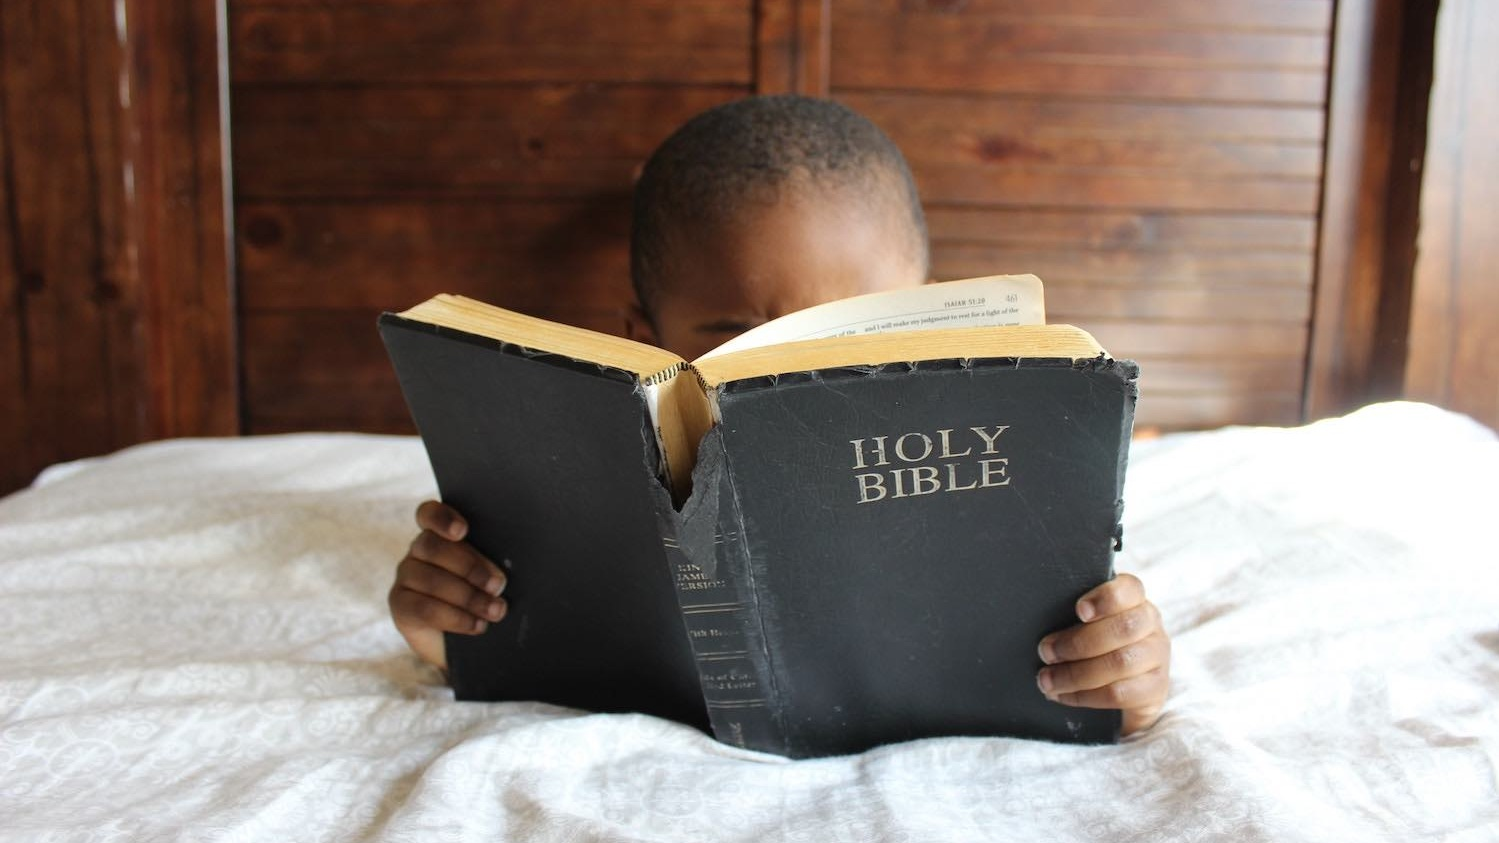 A child in bed reading a Bible.